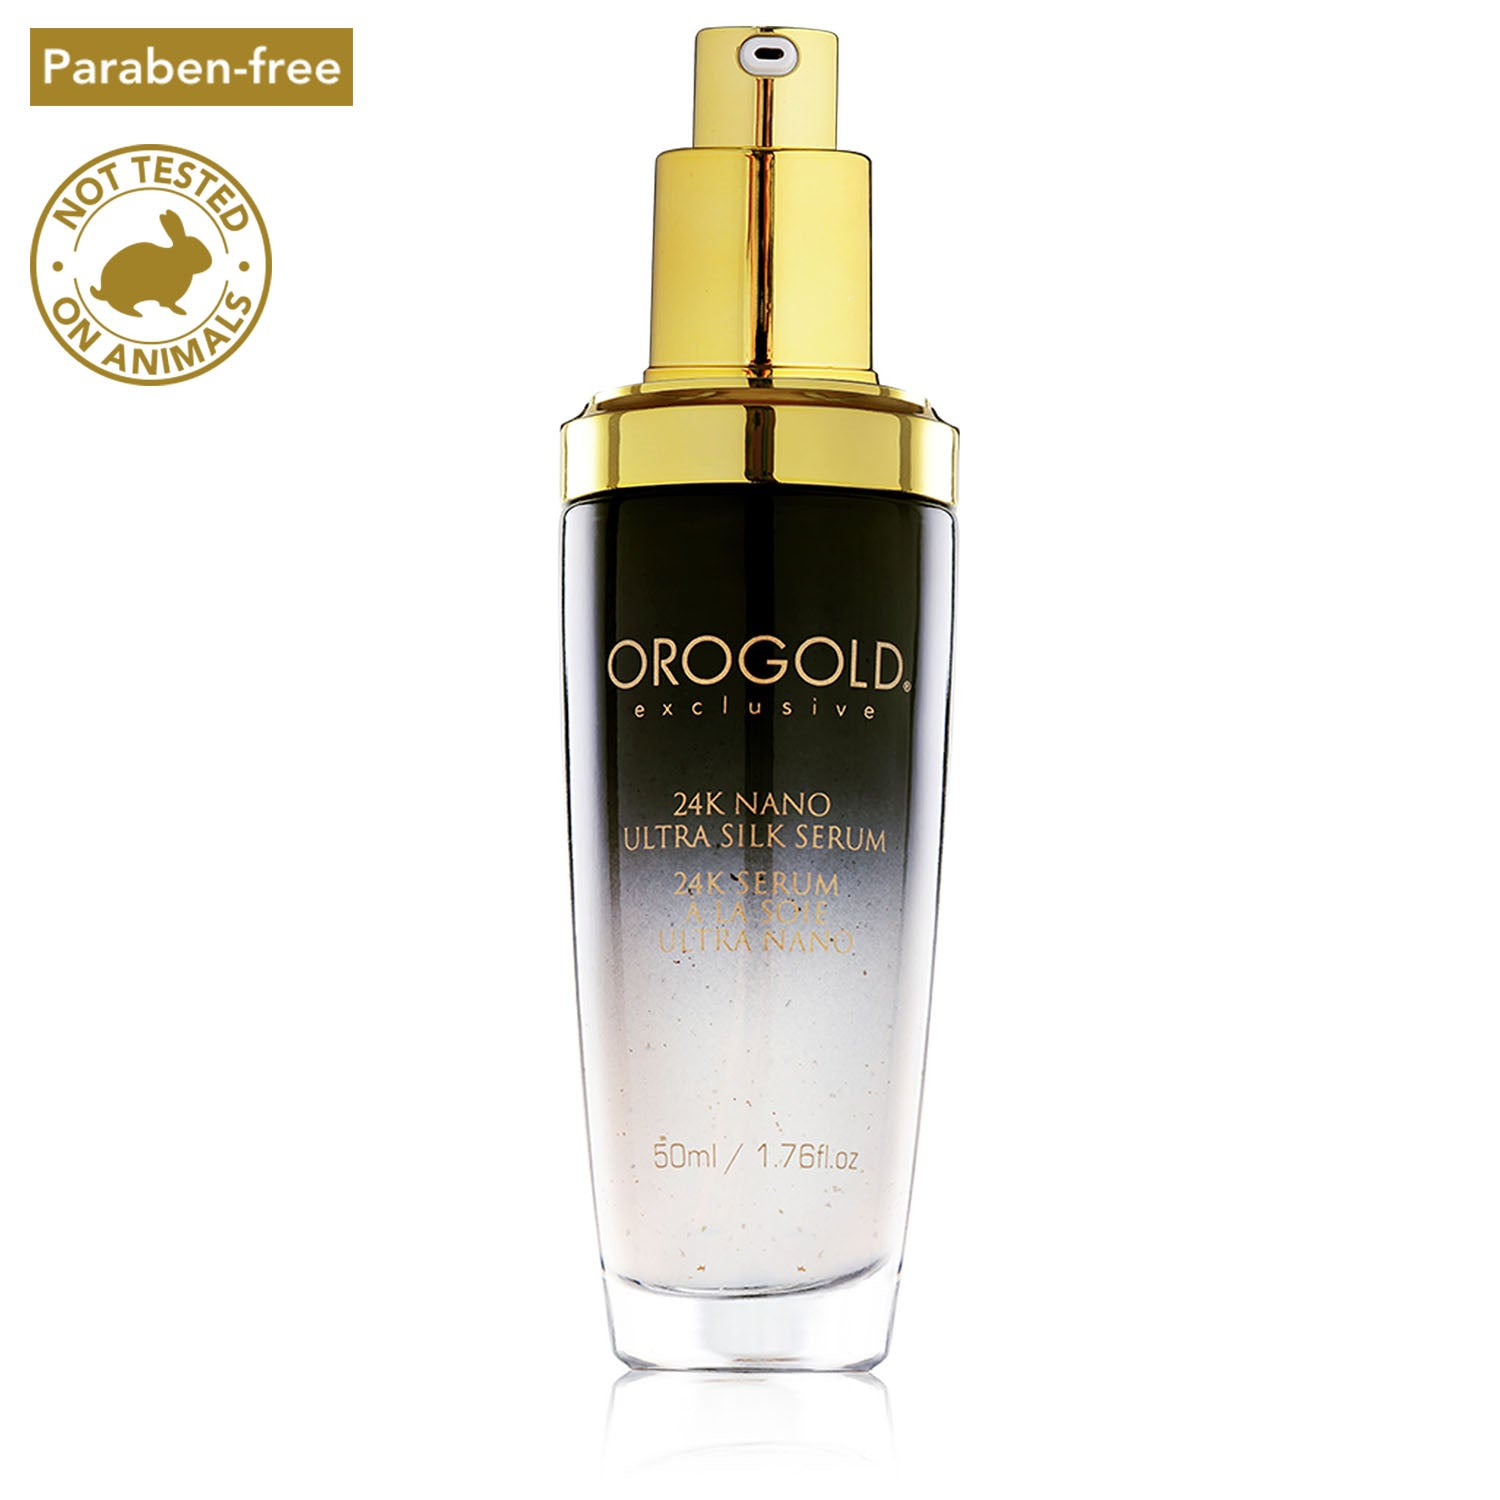 orogold nano ultra brightening silk serum for face